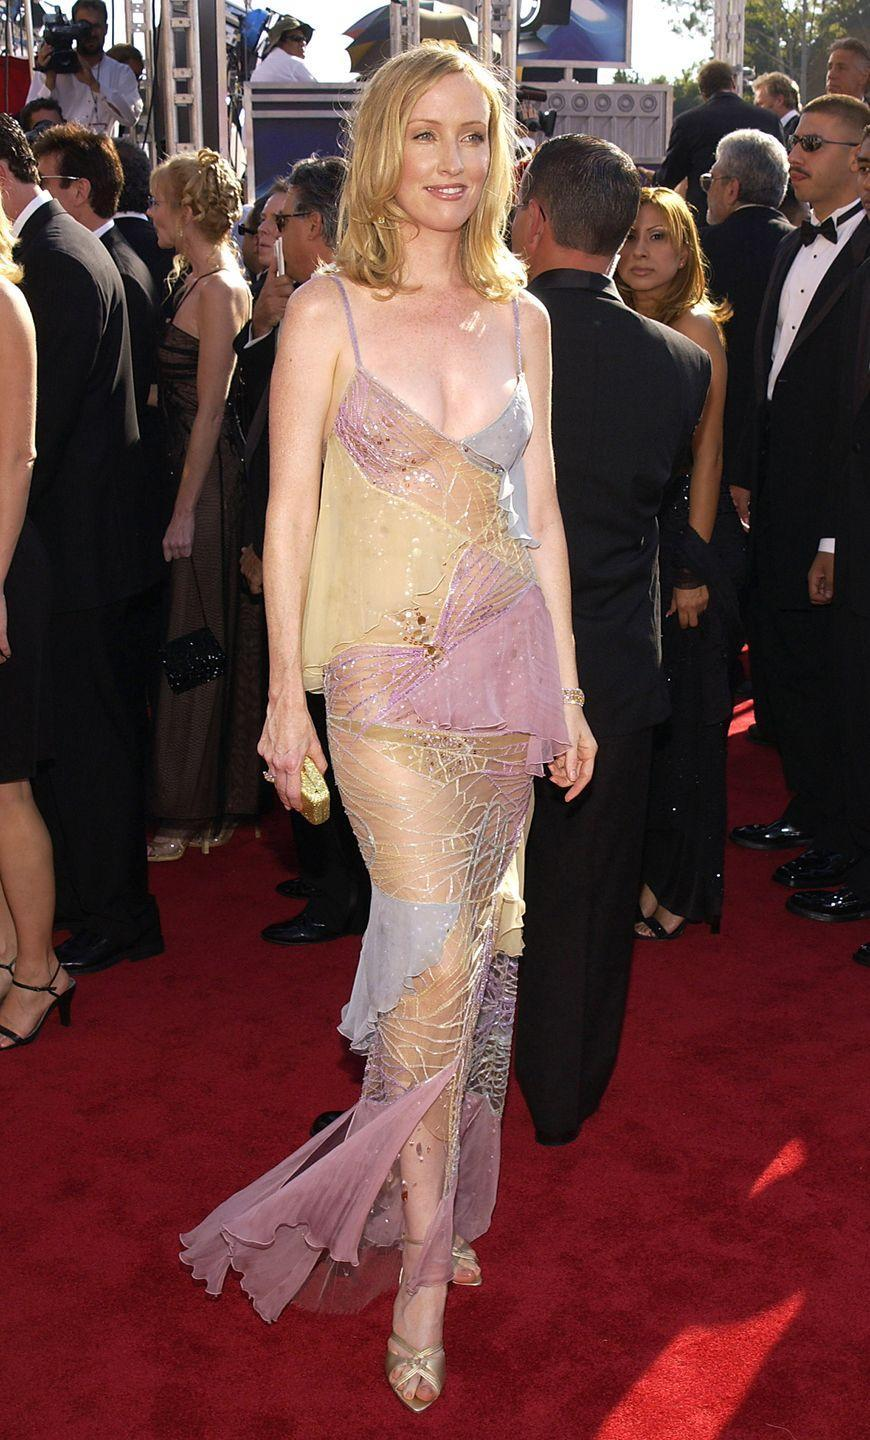 <p>Before the naked dress became ubiquitous, Mahoney hit the red carpet of the Emmys in 2003 in a dangerously sheer lace dress. </p>